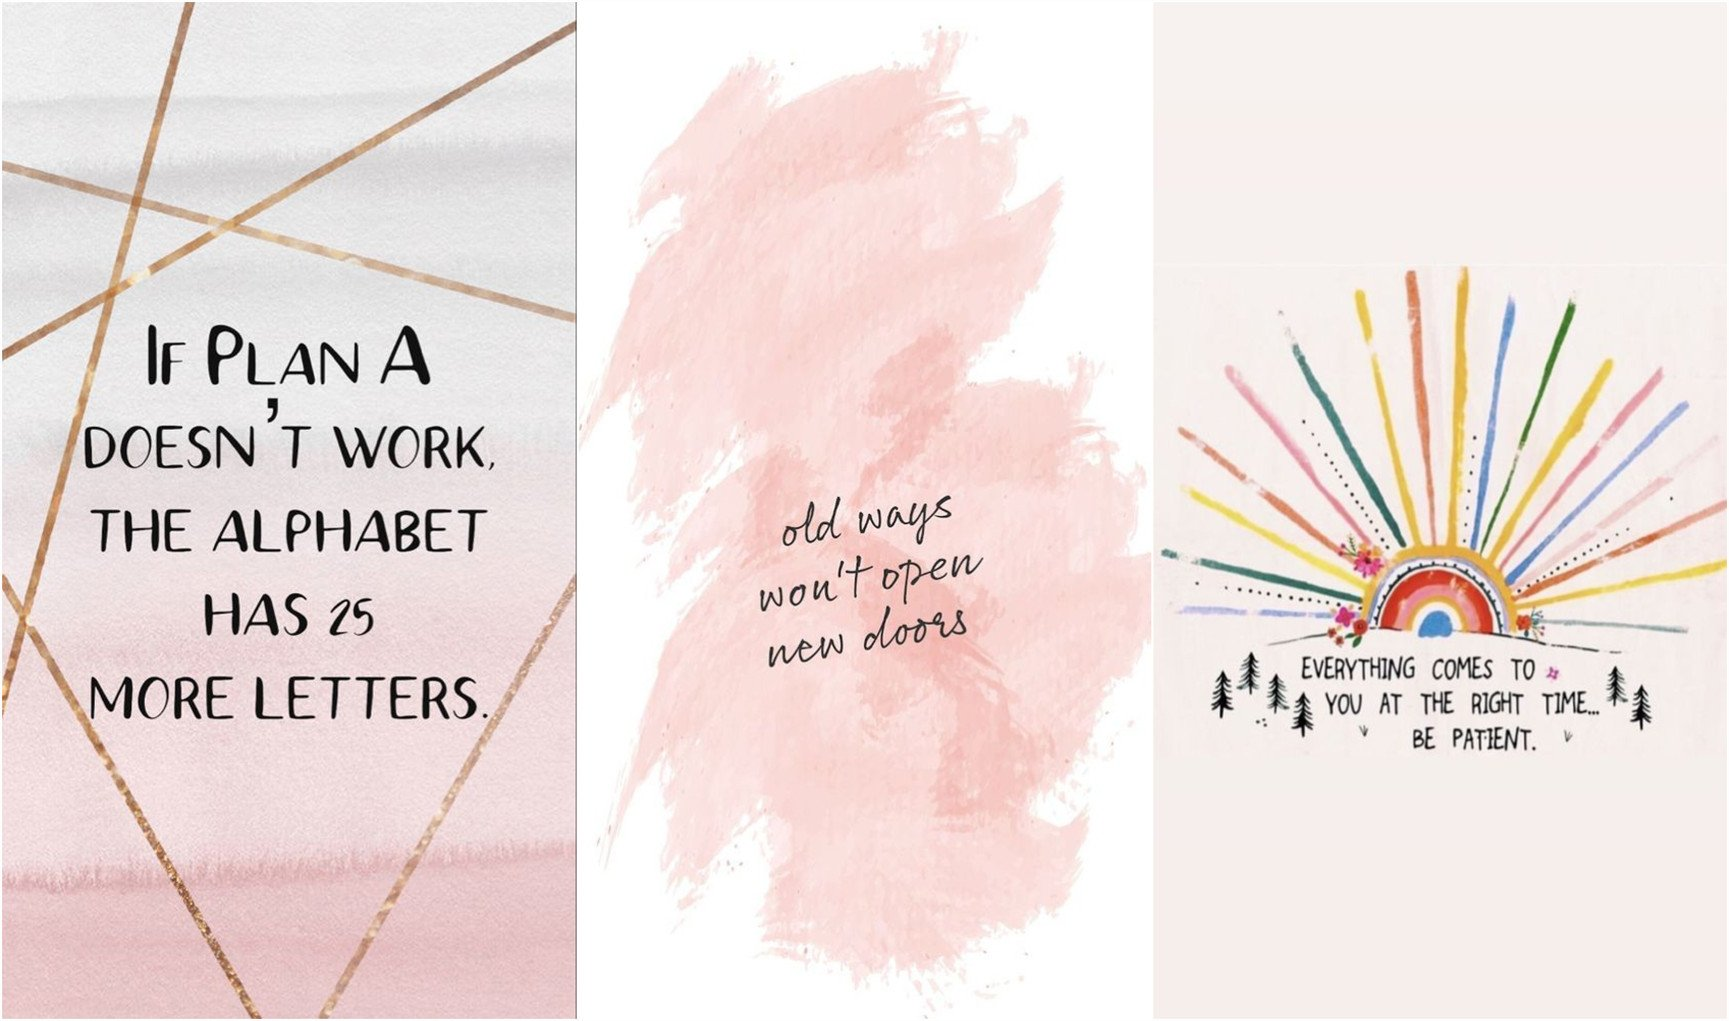 22 Inspirational iPhone Wallpaper Quotes to Embrace   Fancy Ideas 1729x1021